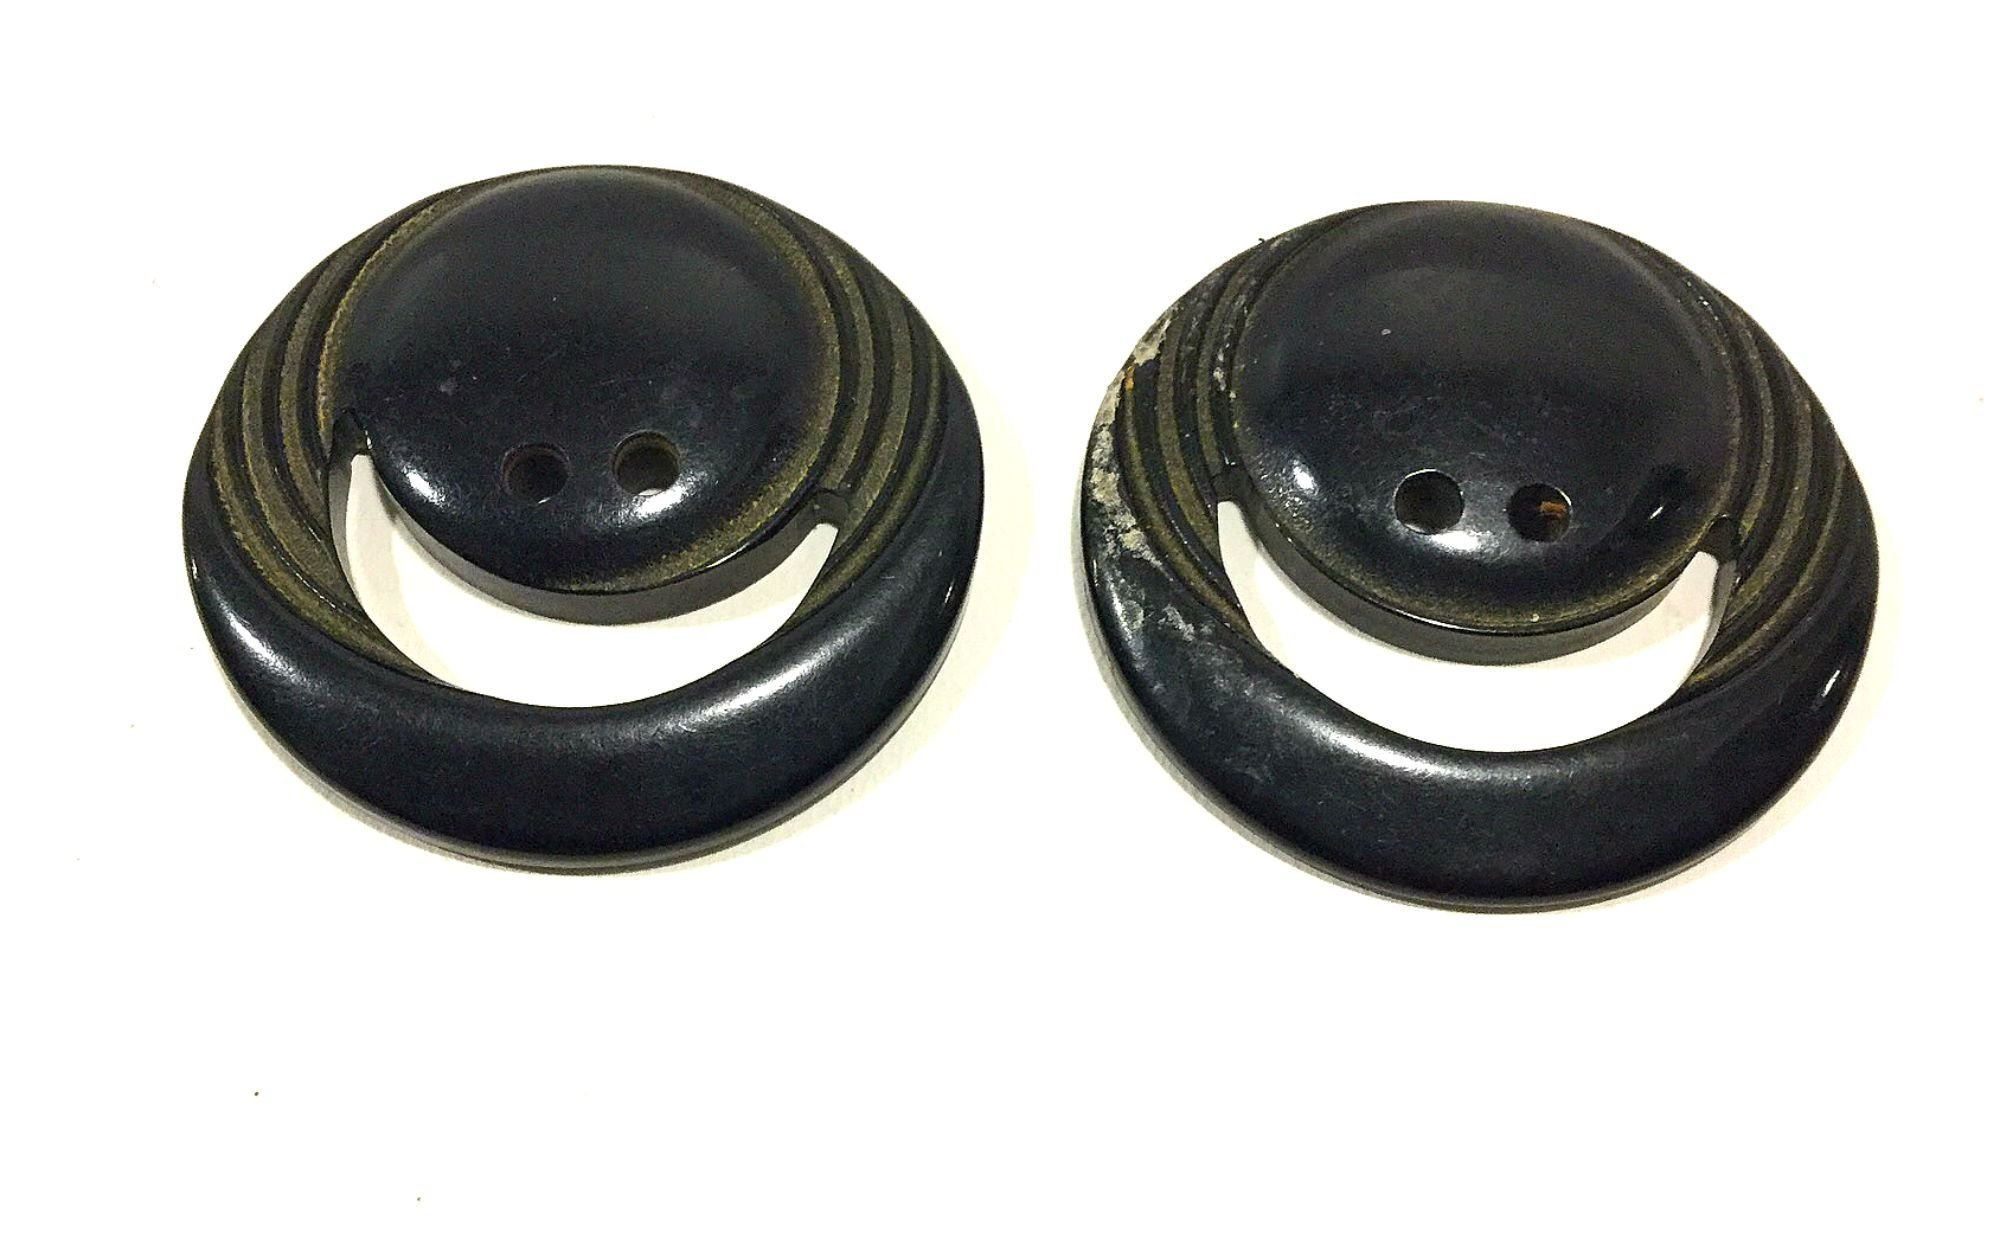 Lot of TWO Old Vintage BAKELITE Carved Smiley Face Sewing Buttons VBL304